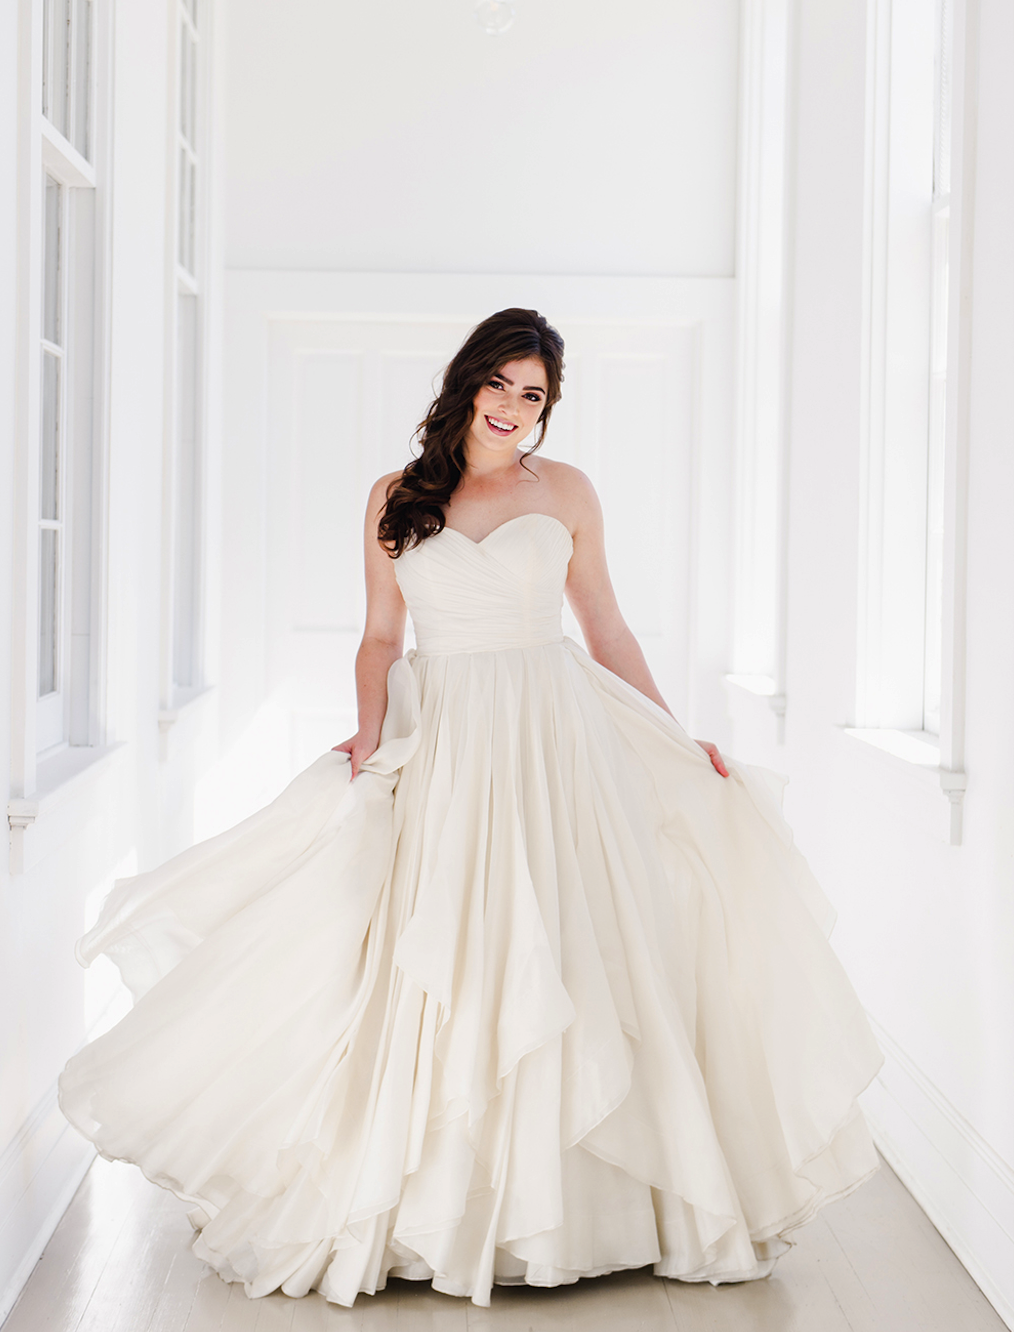 Beautiful Timeless Bride in a Heidi Elnora Gown